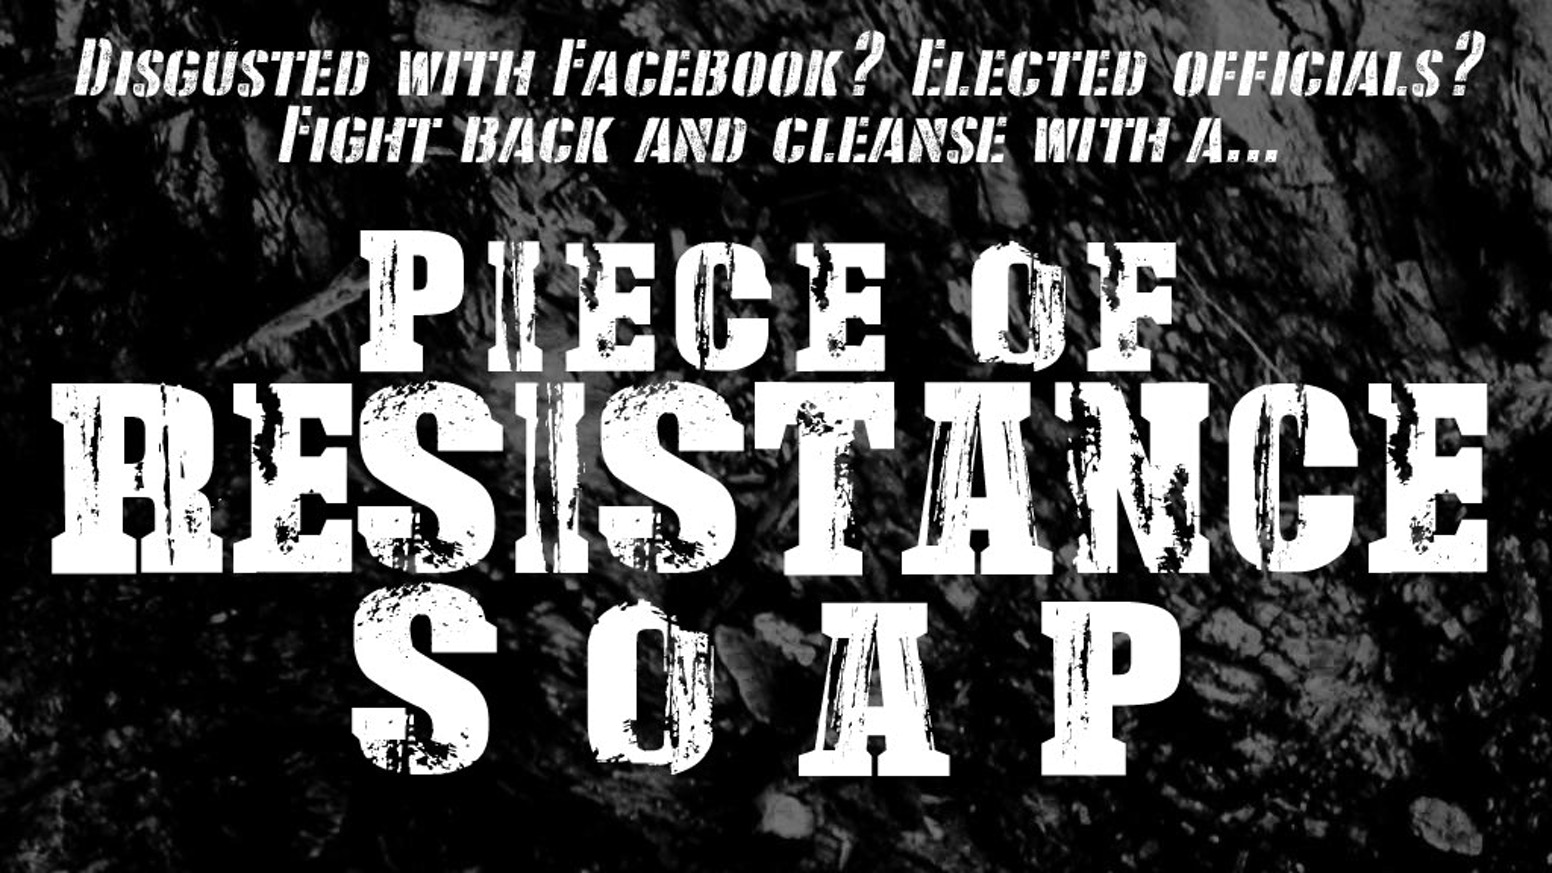 Every resistance begins with small pieces until it becomes a movement. Why not start with soap? Begin fresh, energized, and cleansed.